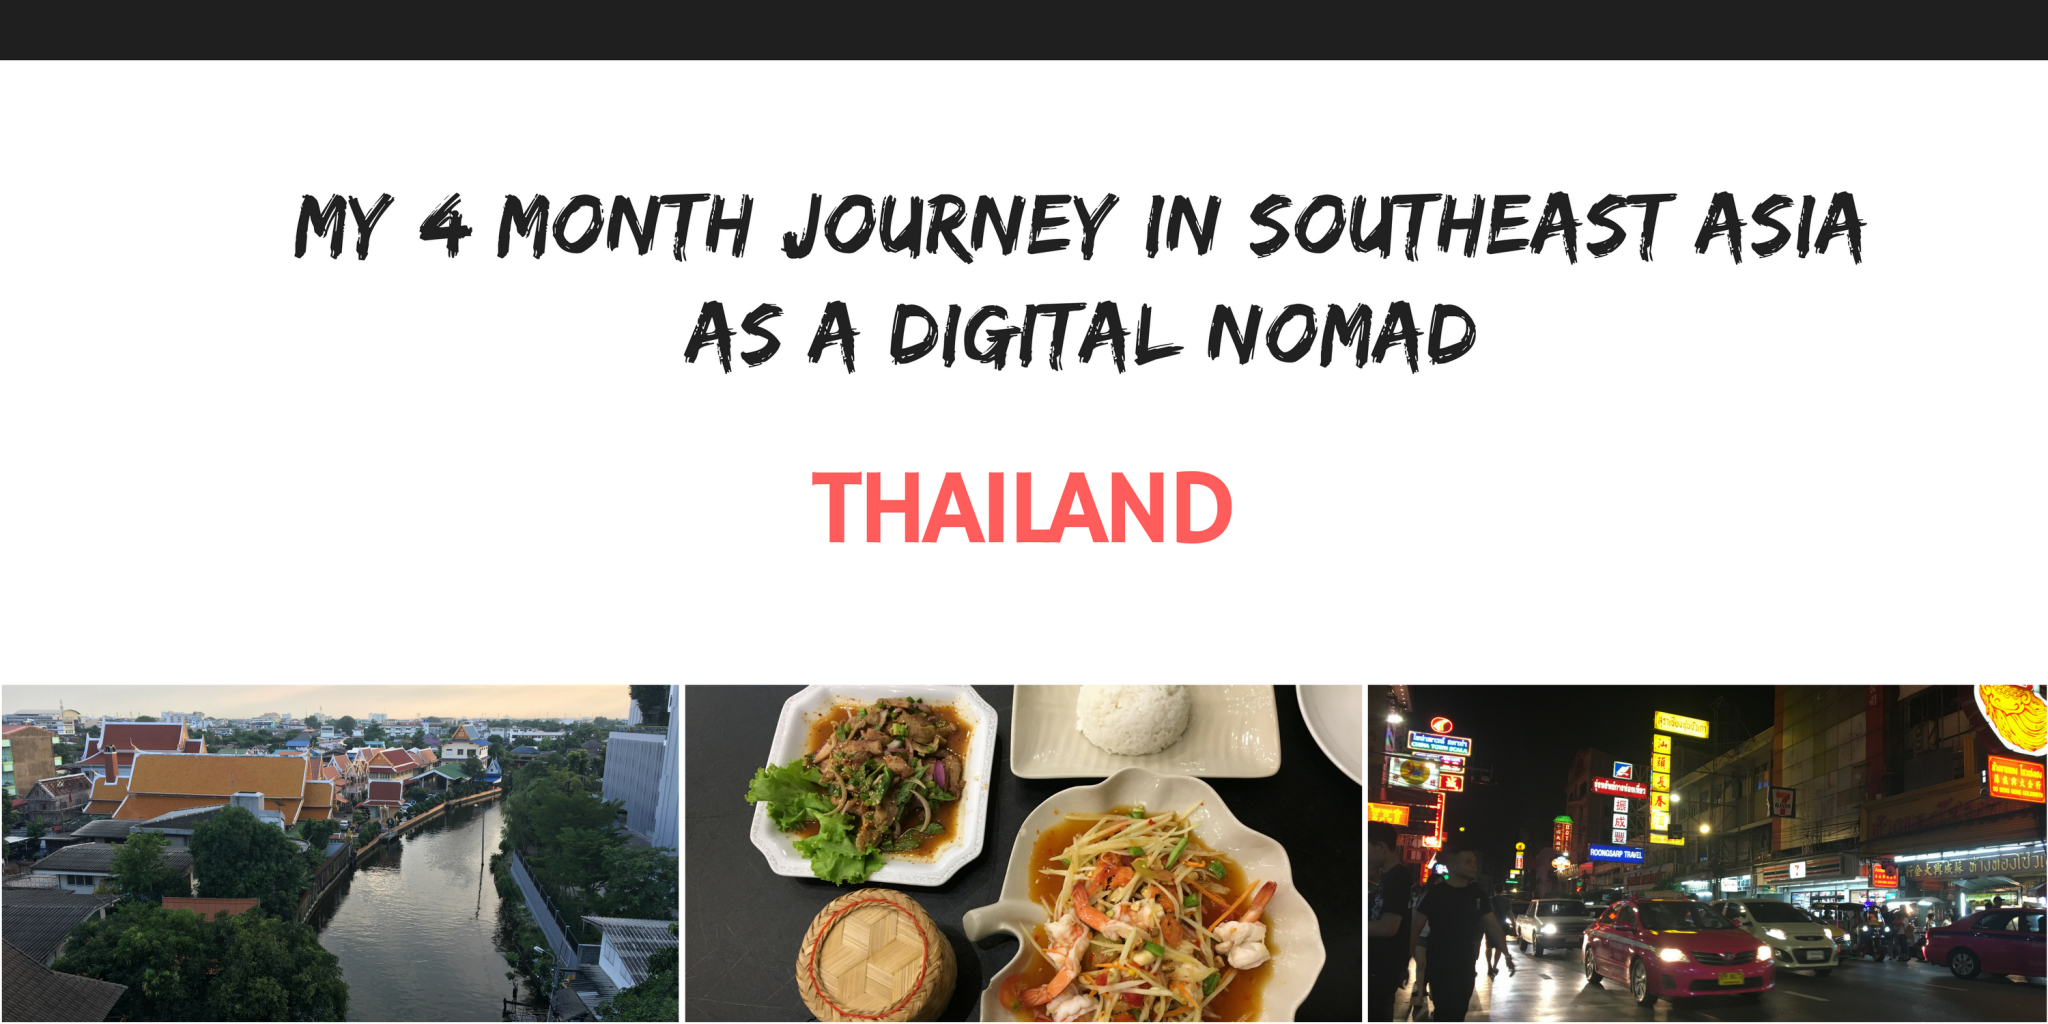 My 4 month Journey in Southeast Asia as a Digital Nomad: Thailand